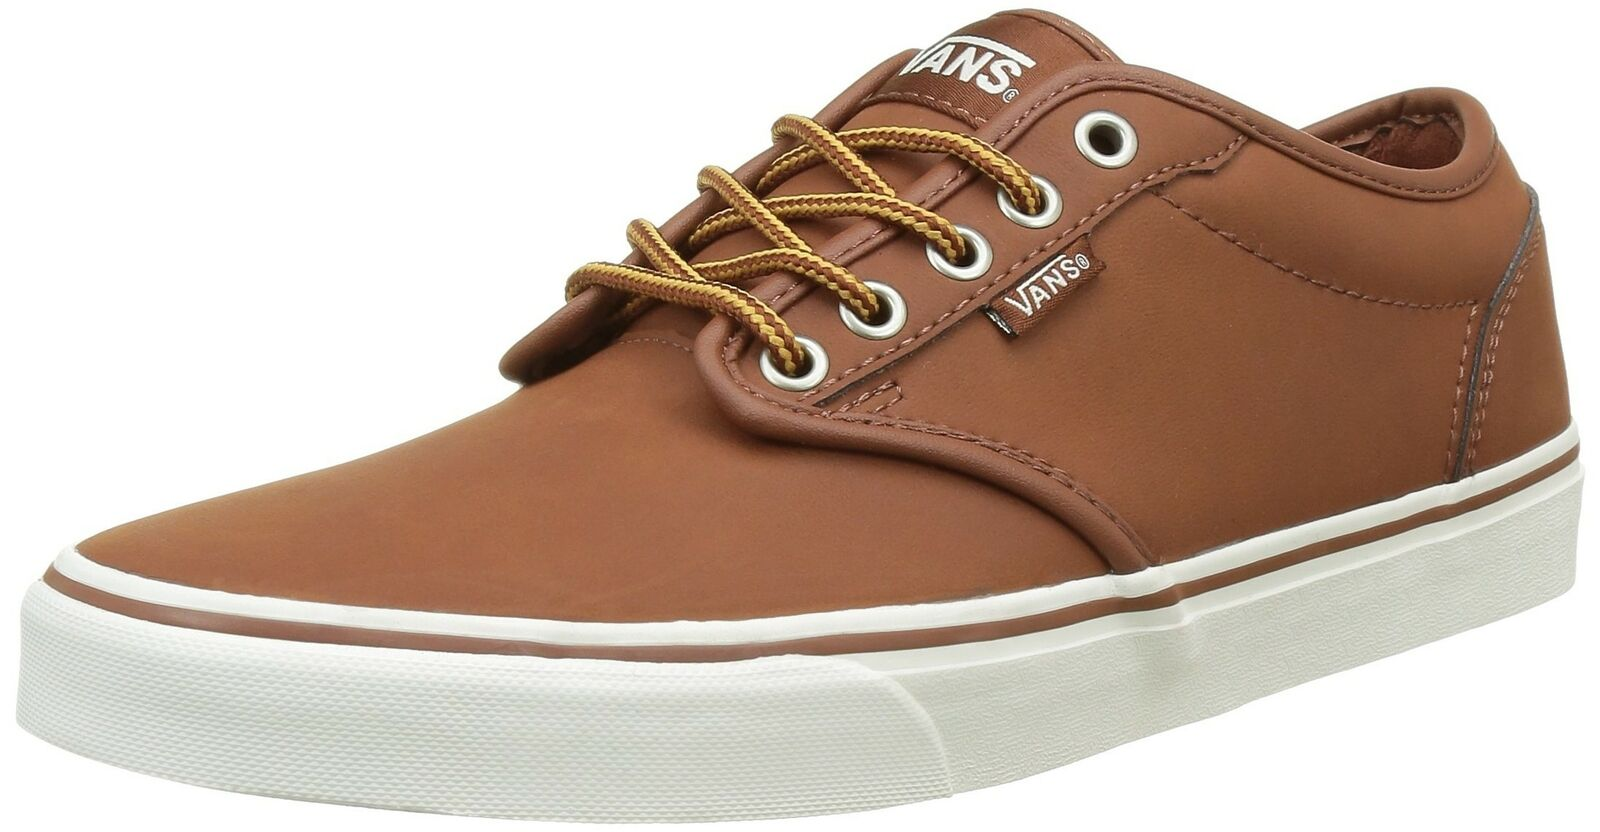 Vans Atwood shoes US 9.5 Leather Brown